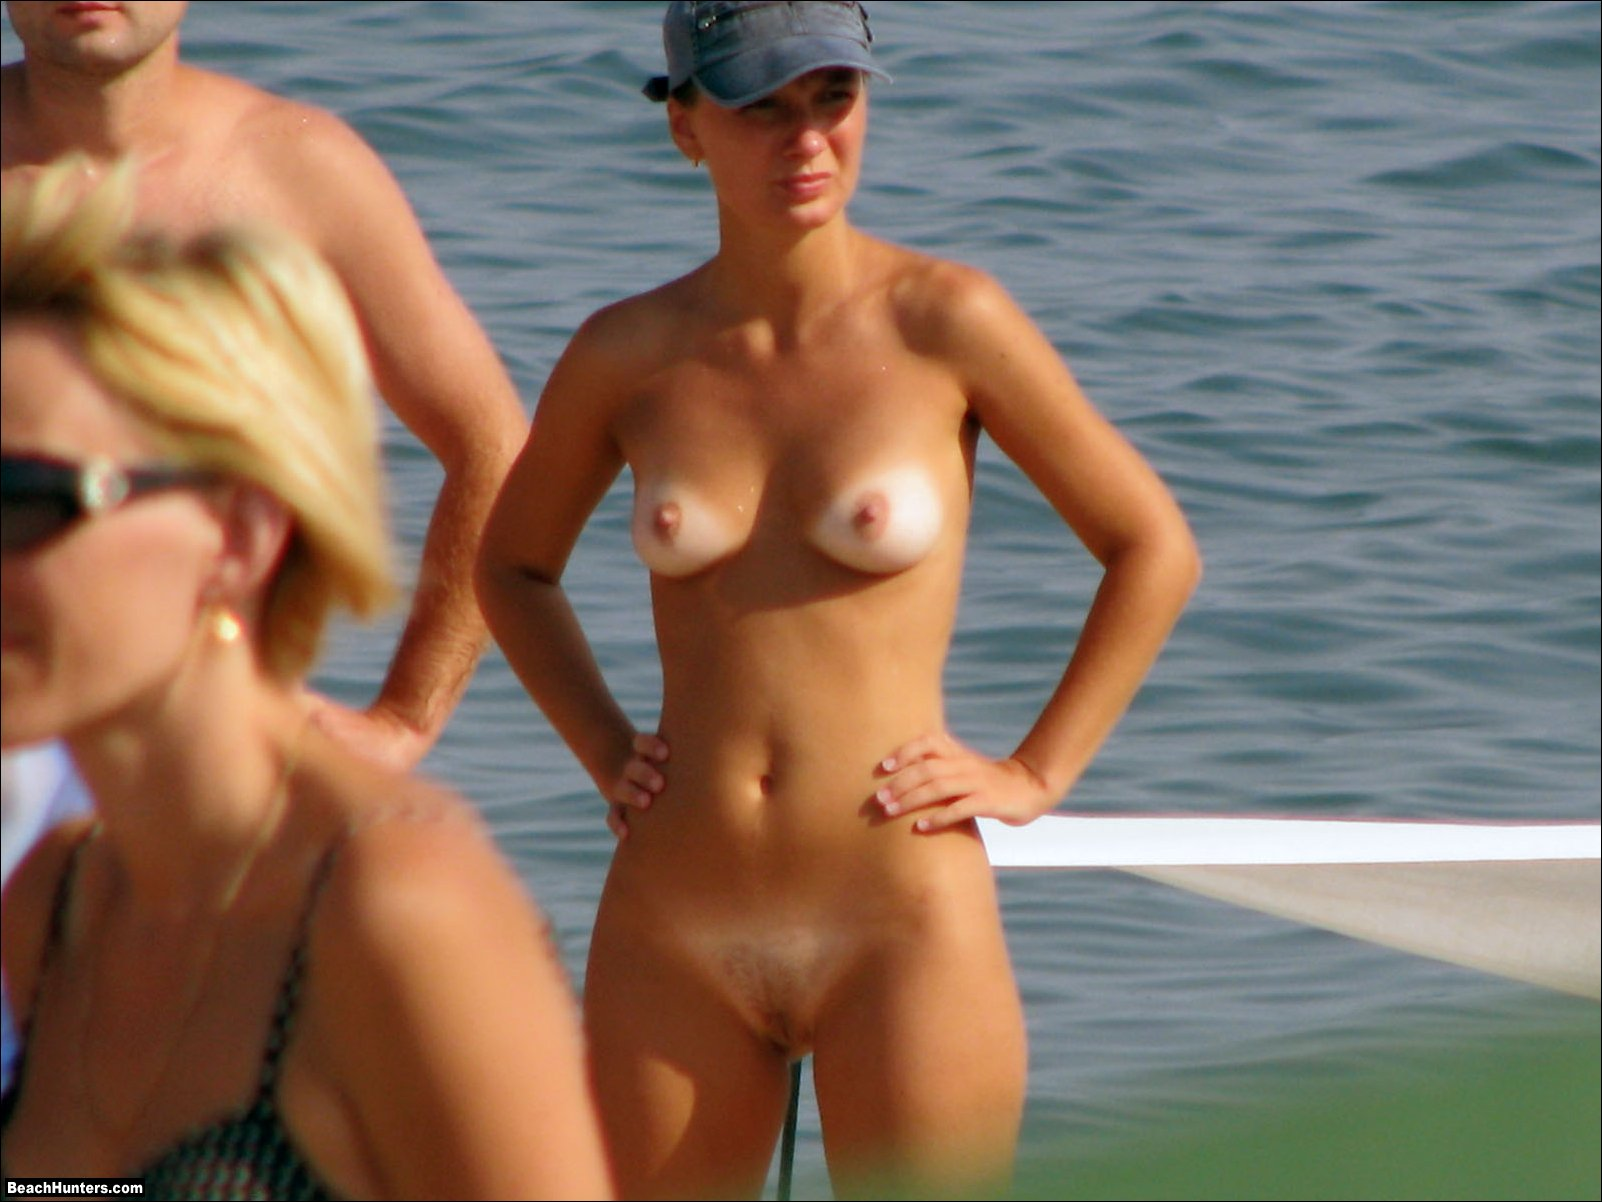 naked women on a beach